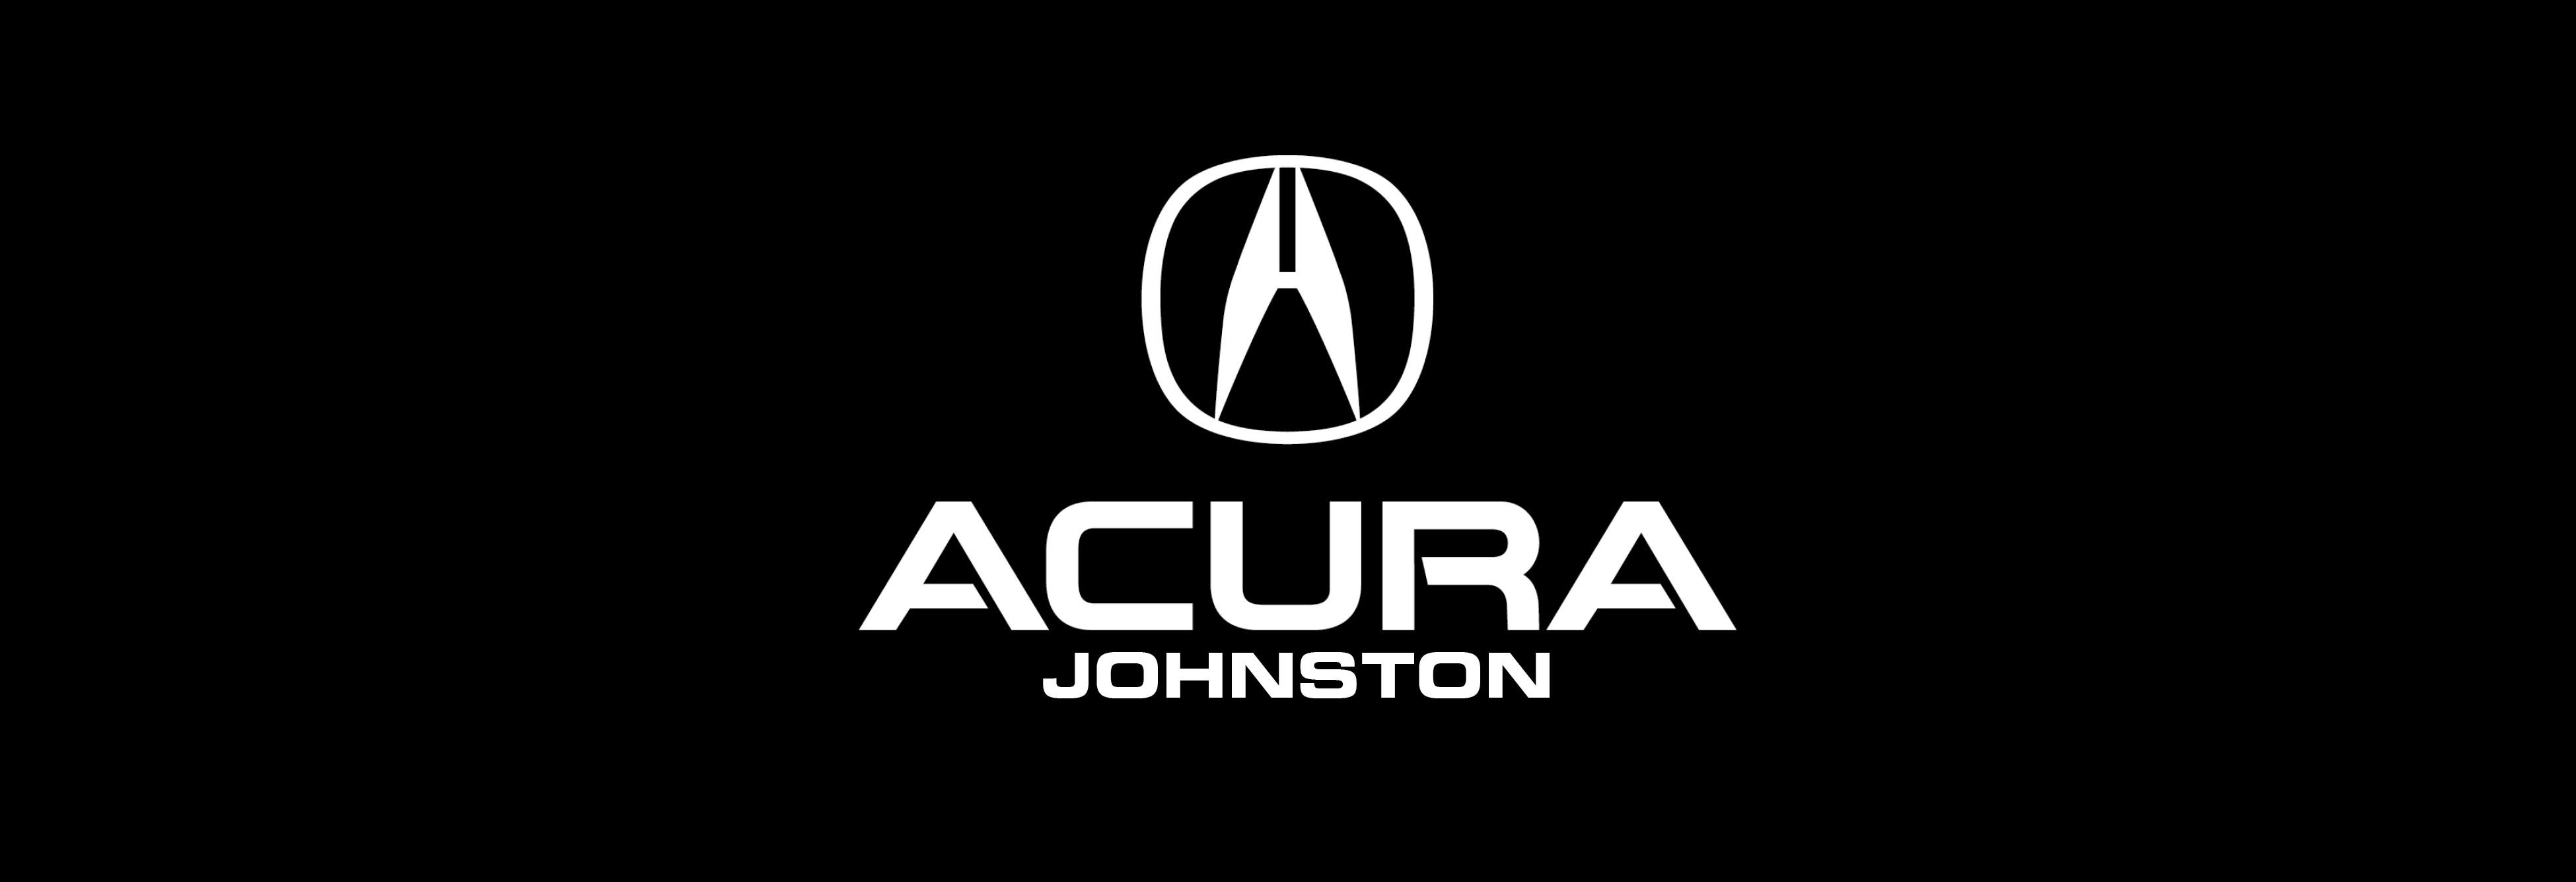 acura of johnston precision crafted perforomance detailing car dealership iowa